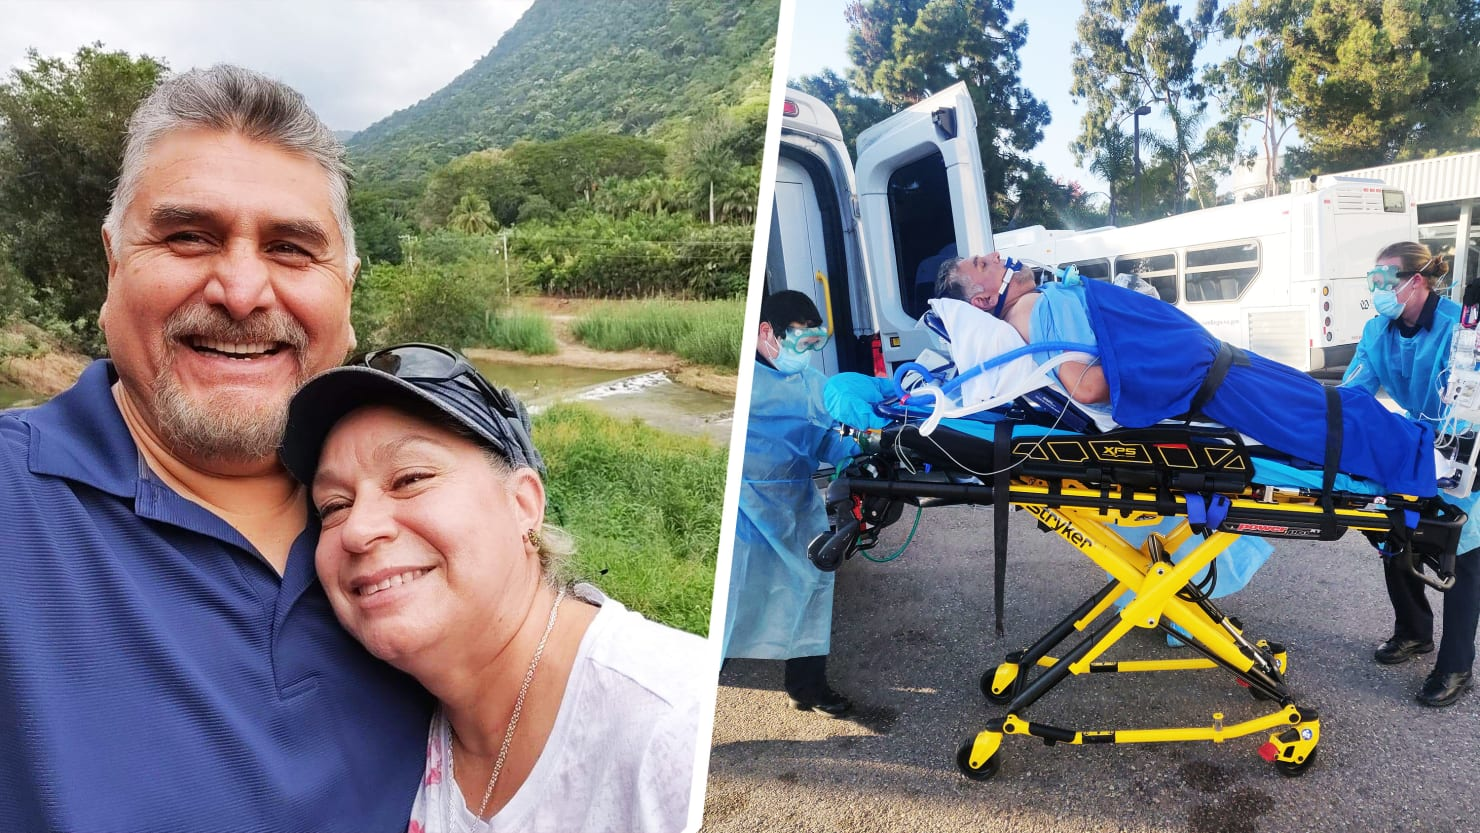 This Couple Went on a Mexico Vacation—and Wound Up in ICU